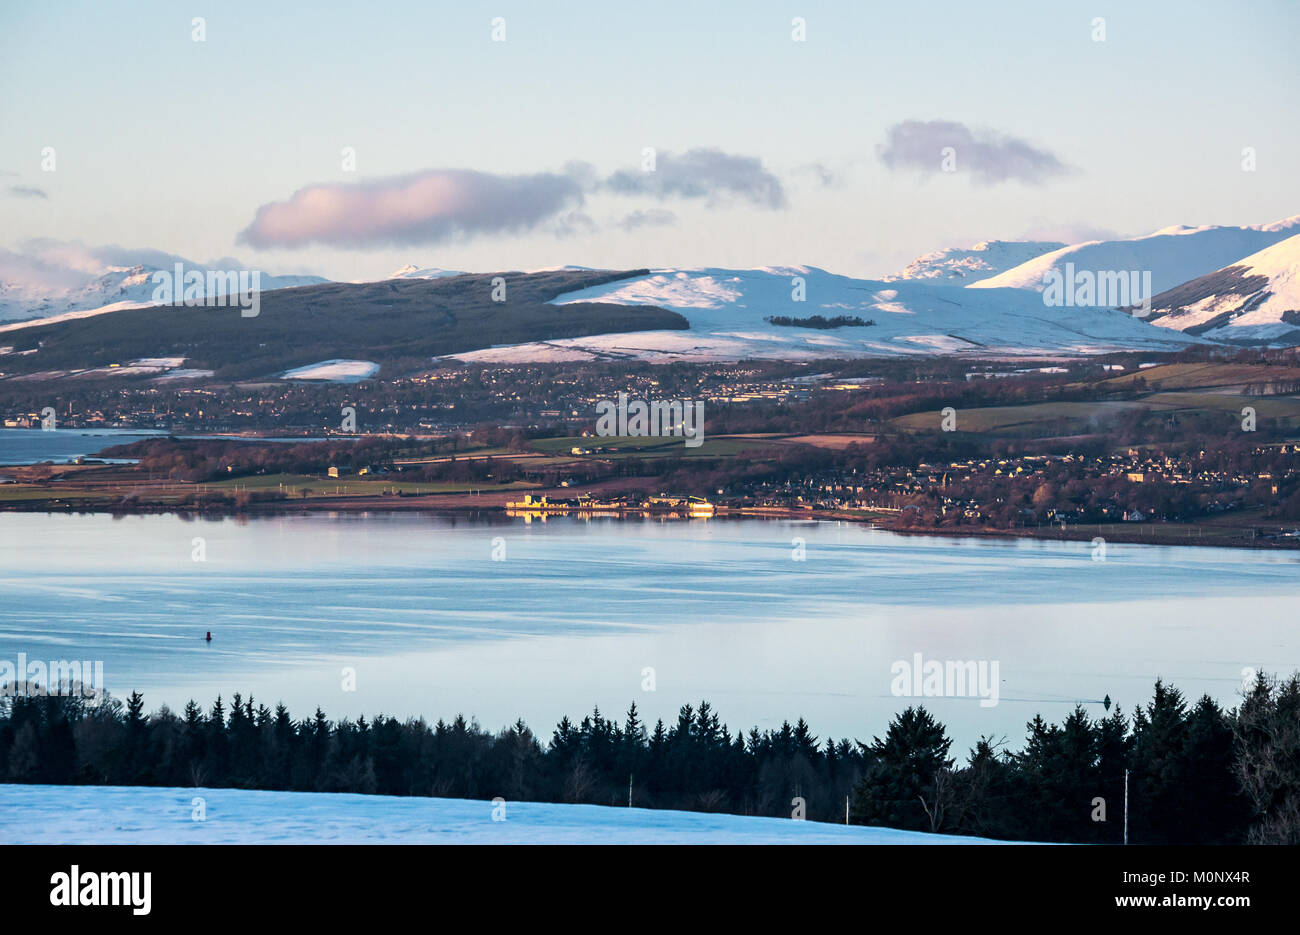 Winter scene across Clyde River to Dumbarton, with snow covered mountains, blue sky and calm glassy water in evening - Stock Image